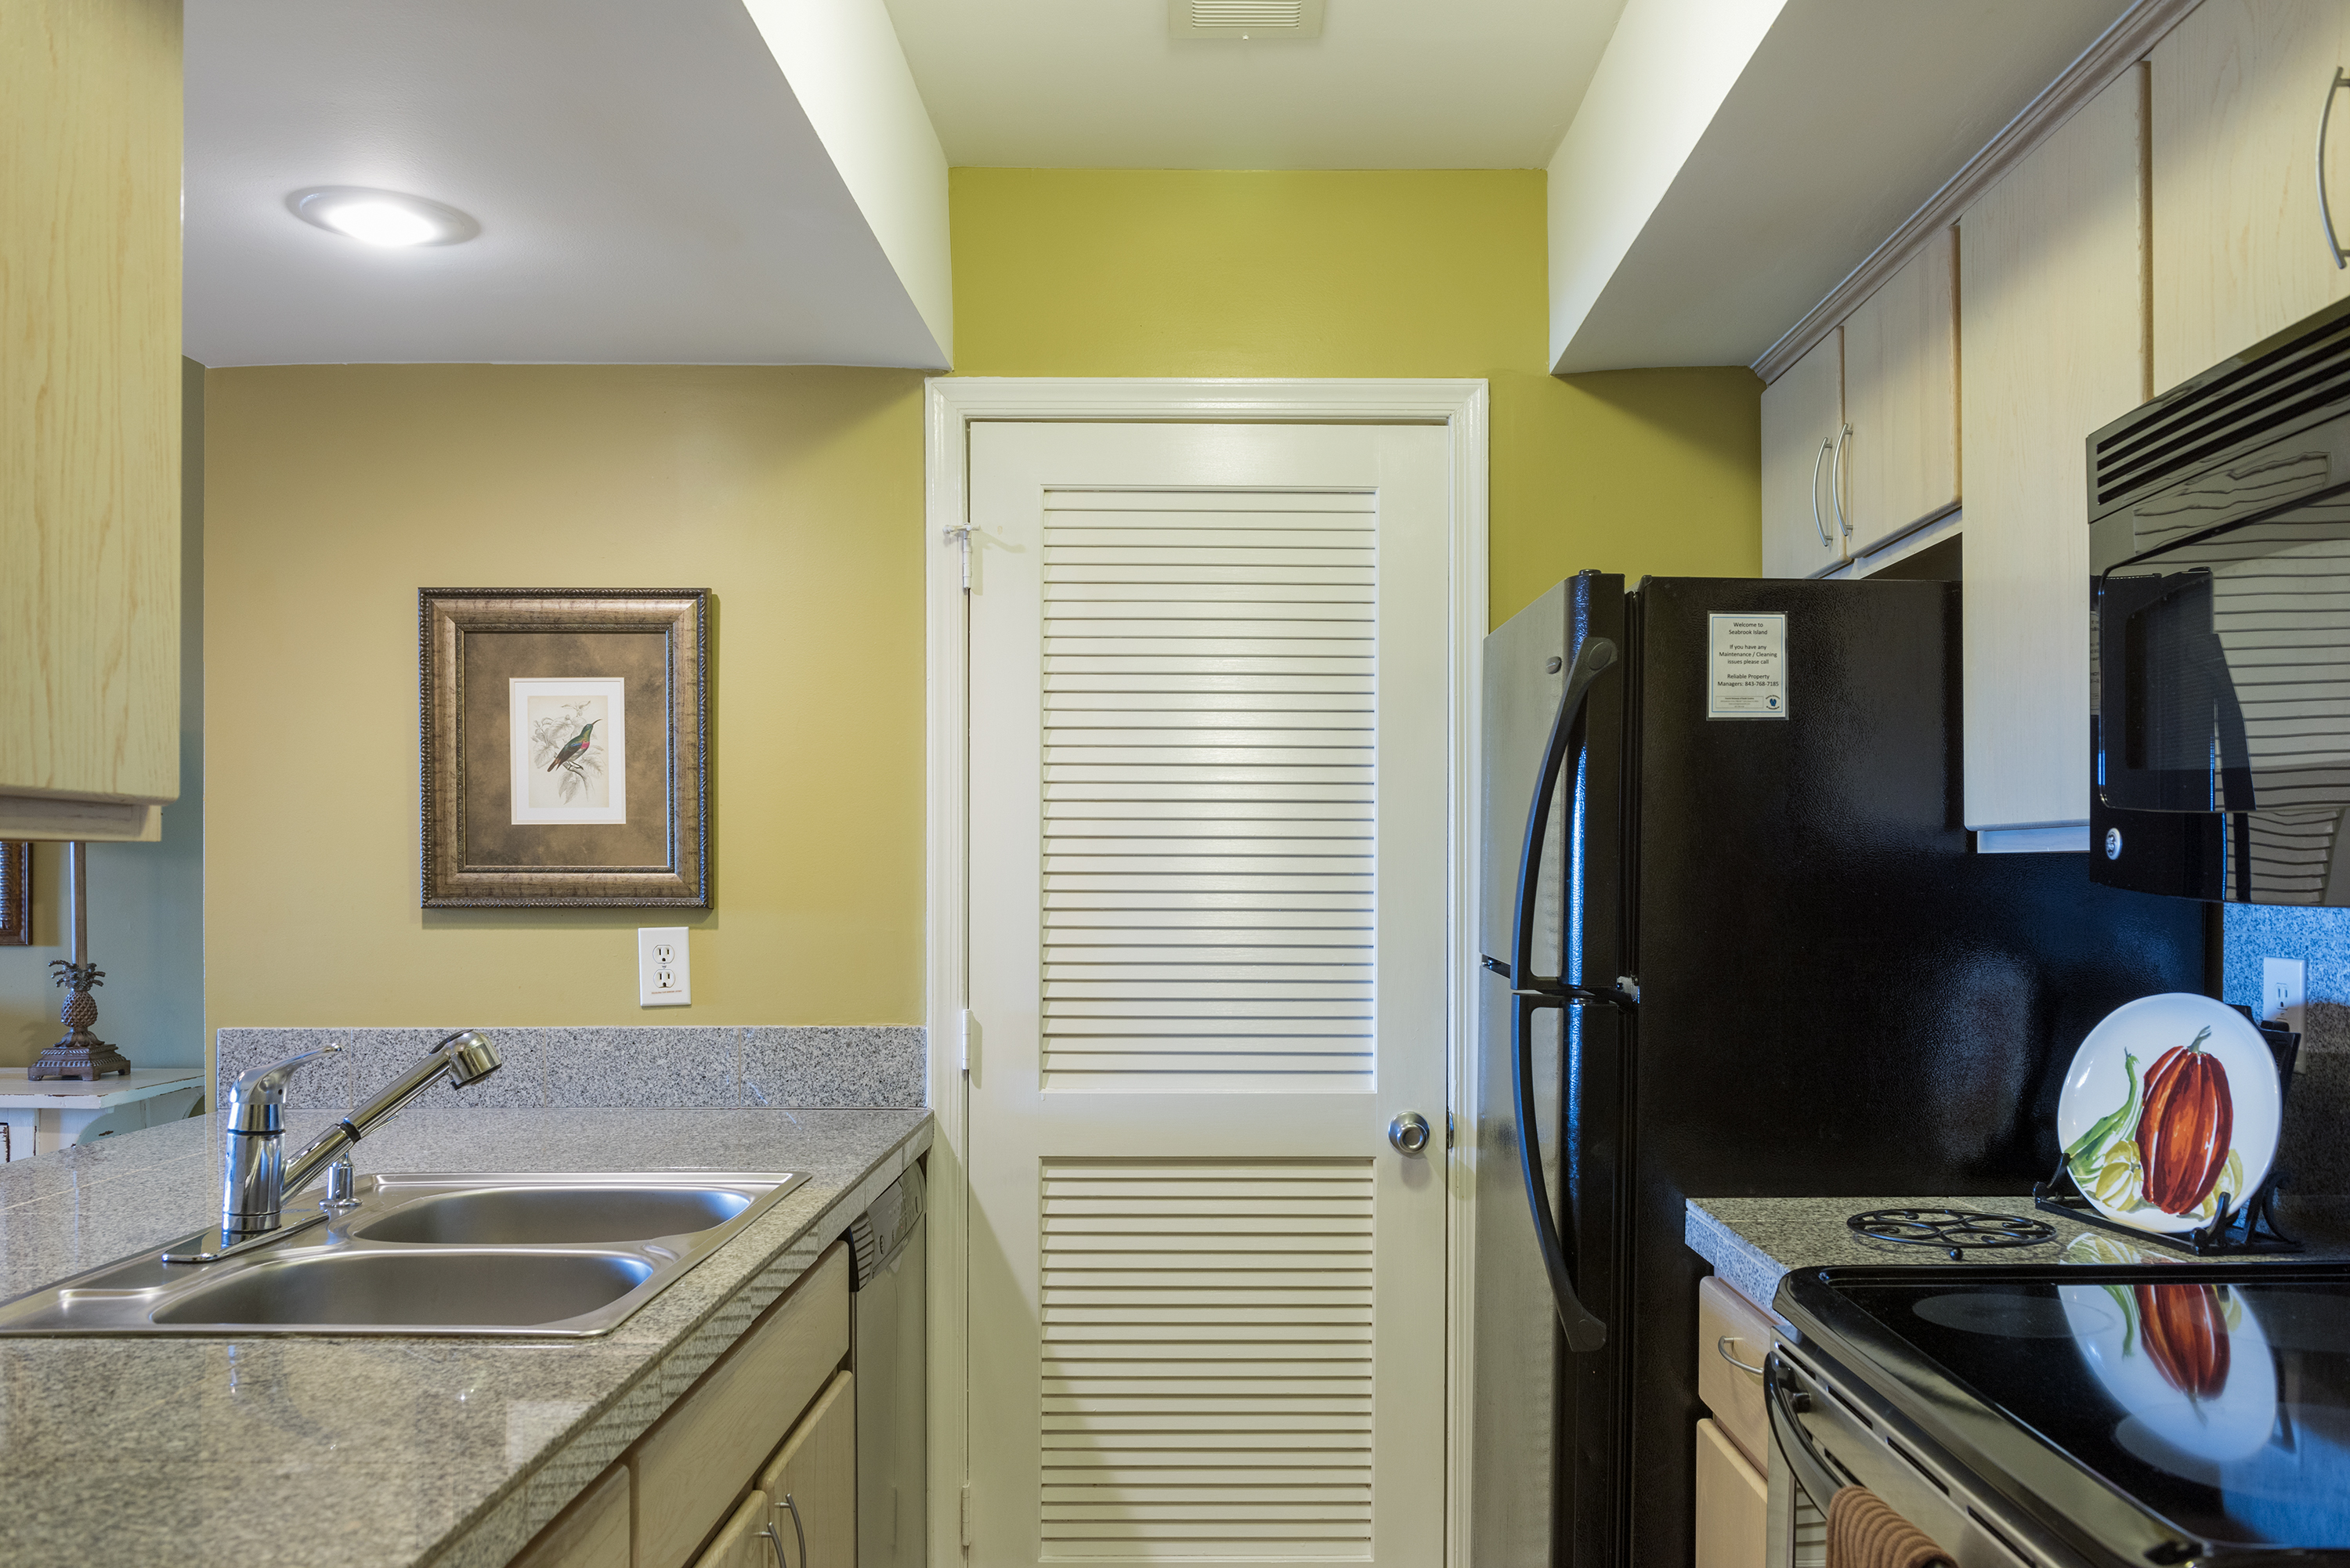 The well equipped kitchen has been remodeled! There is a stack washer and dryer in the closet.